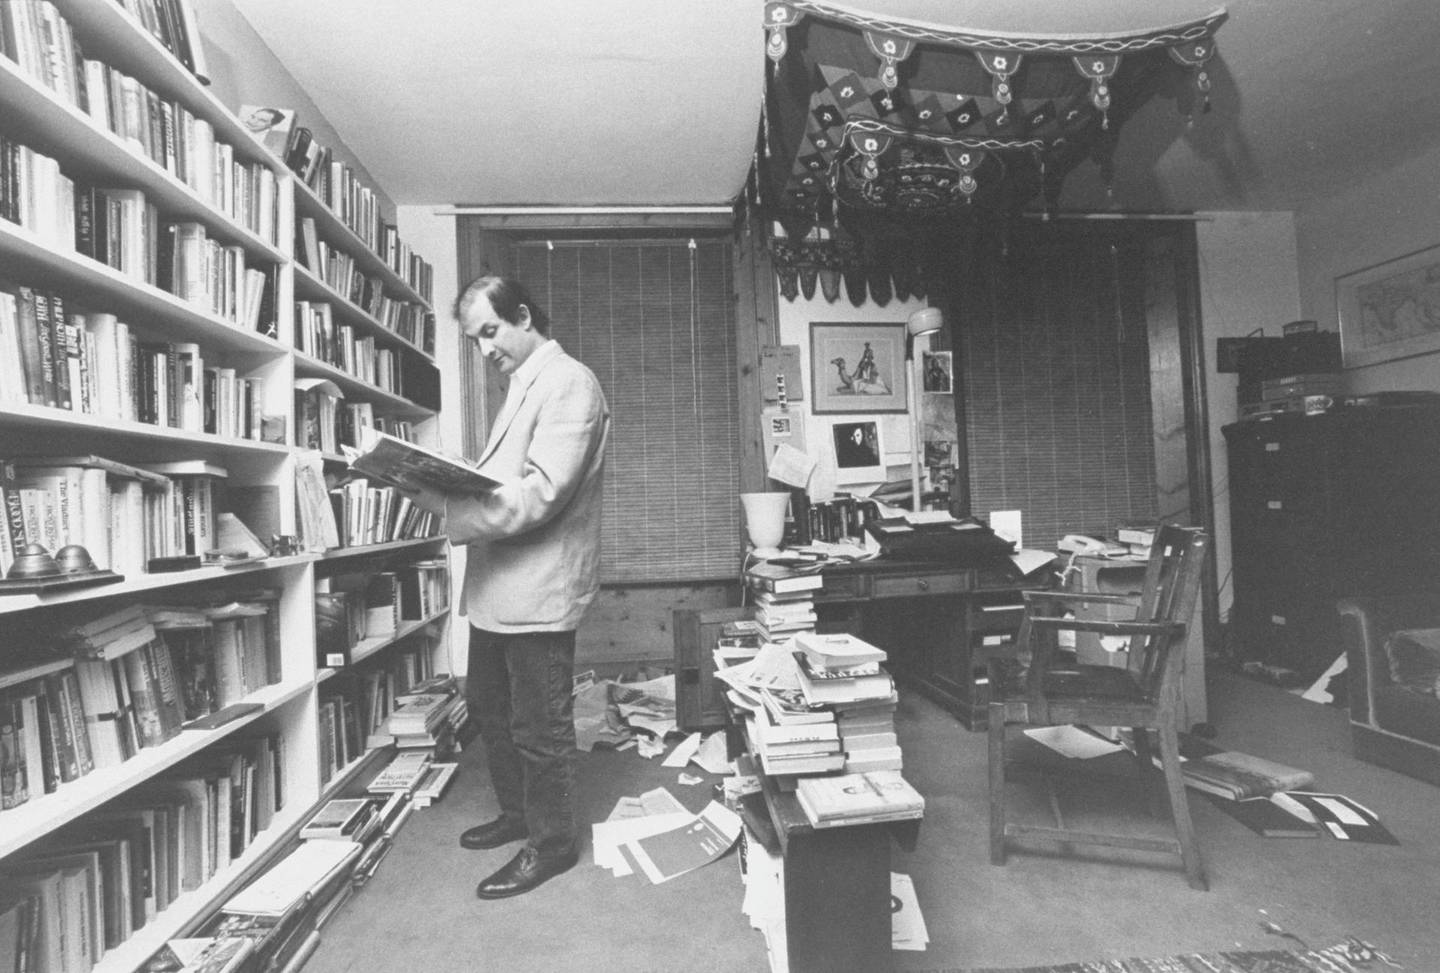 Indian Moslem writer Salman Rushdie in cluttered study going through book before going into hiding after writing SATANIC VERSES for which the Ayatollah Khomeini would soon sentence him to death.  (Photo by Terry Smith/The LIFE Images Collection via Getty Images/Getty Images)